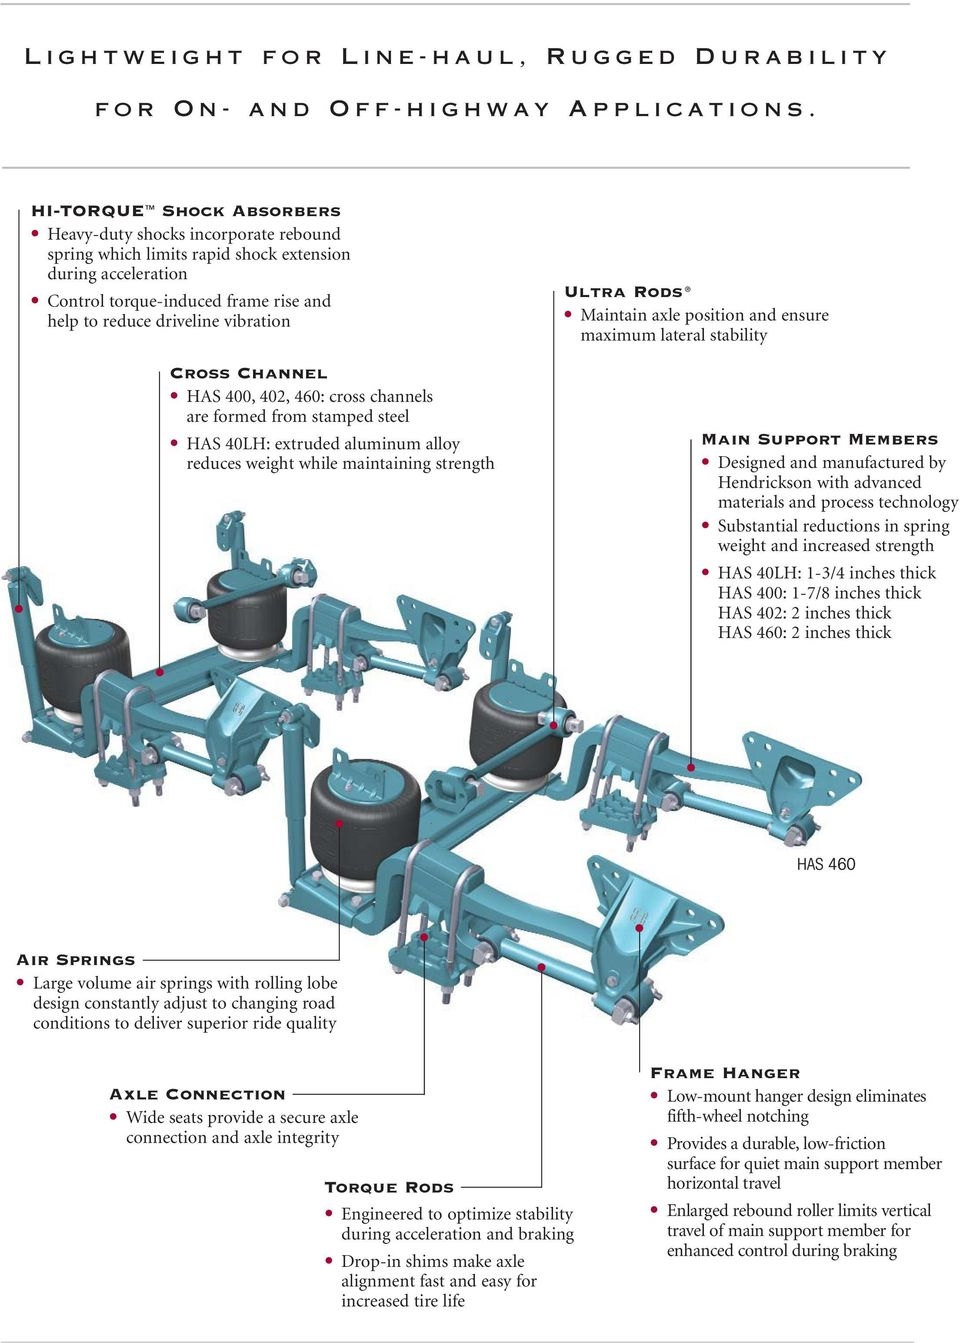 Ultra Rods Maintain axle position and ensure maximum lateral stability Cross Channel HAS 400, 402, 460: cross channels are formed from stamped steel HAS 40LH: extruded aluminum alloy reduces weight